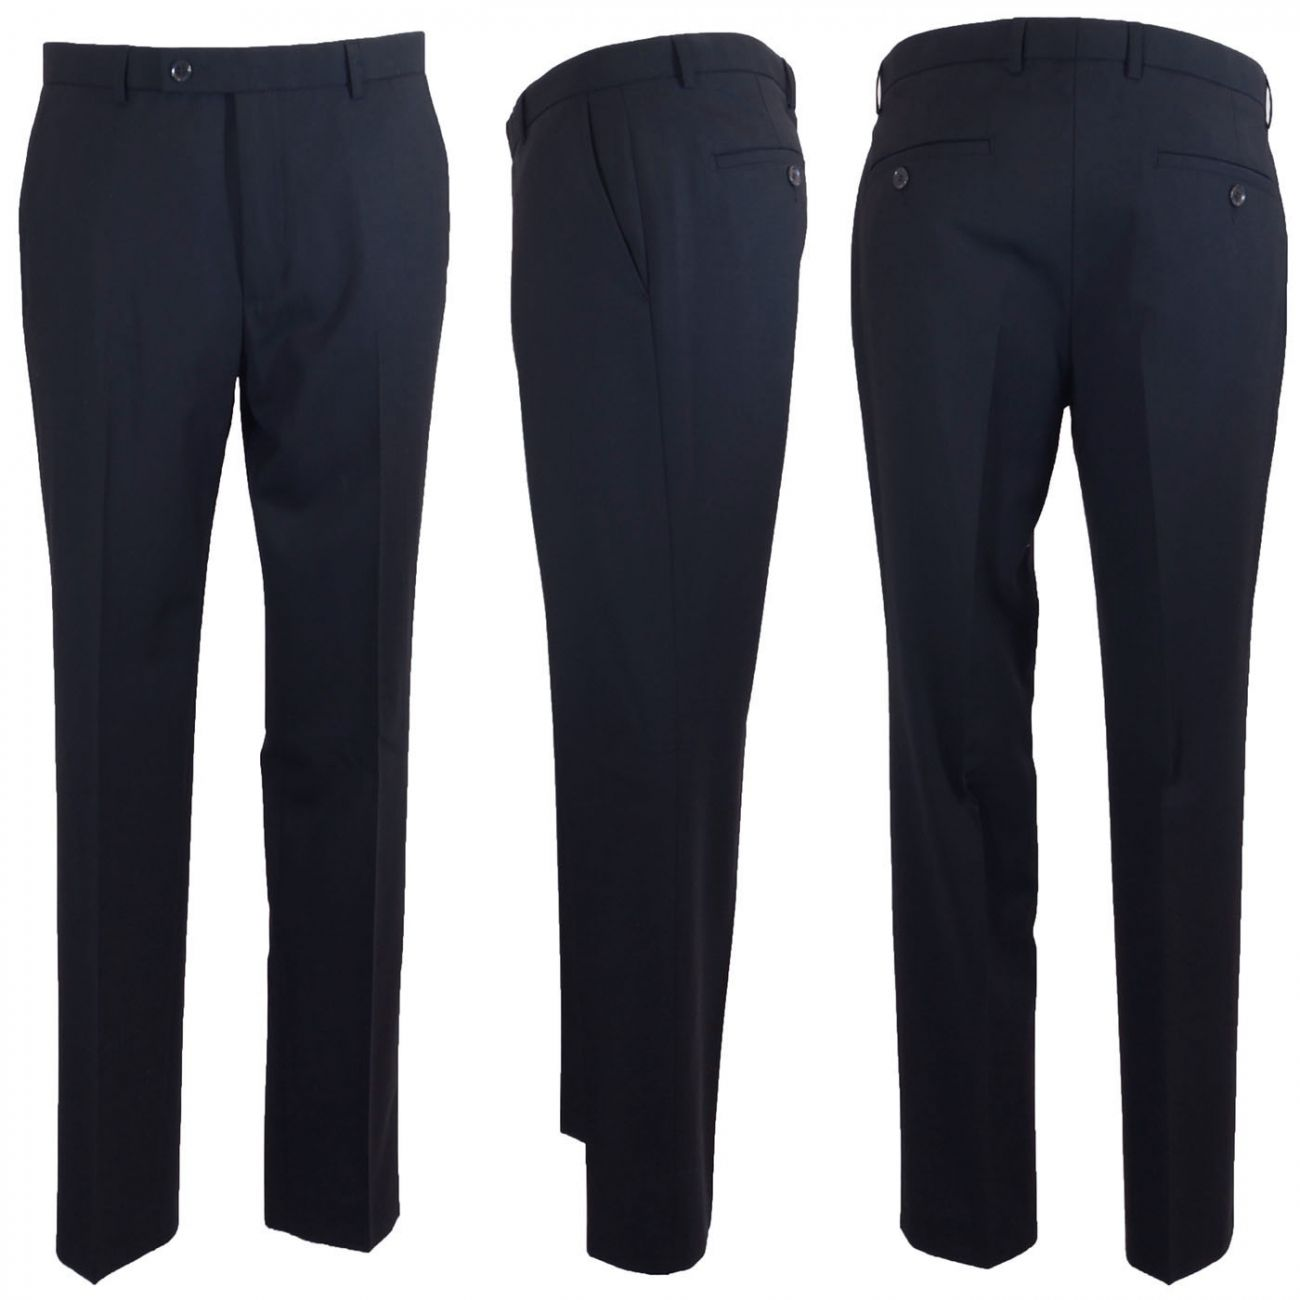 Mens dress pants blue